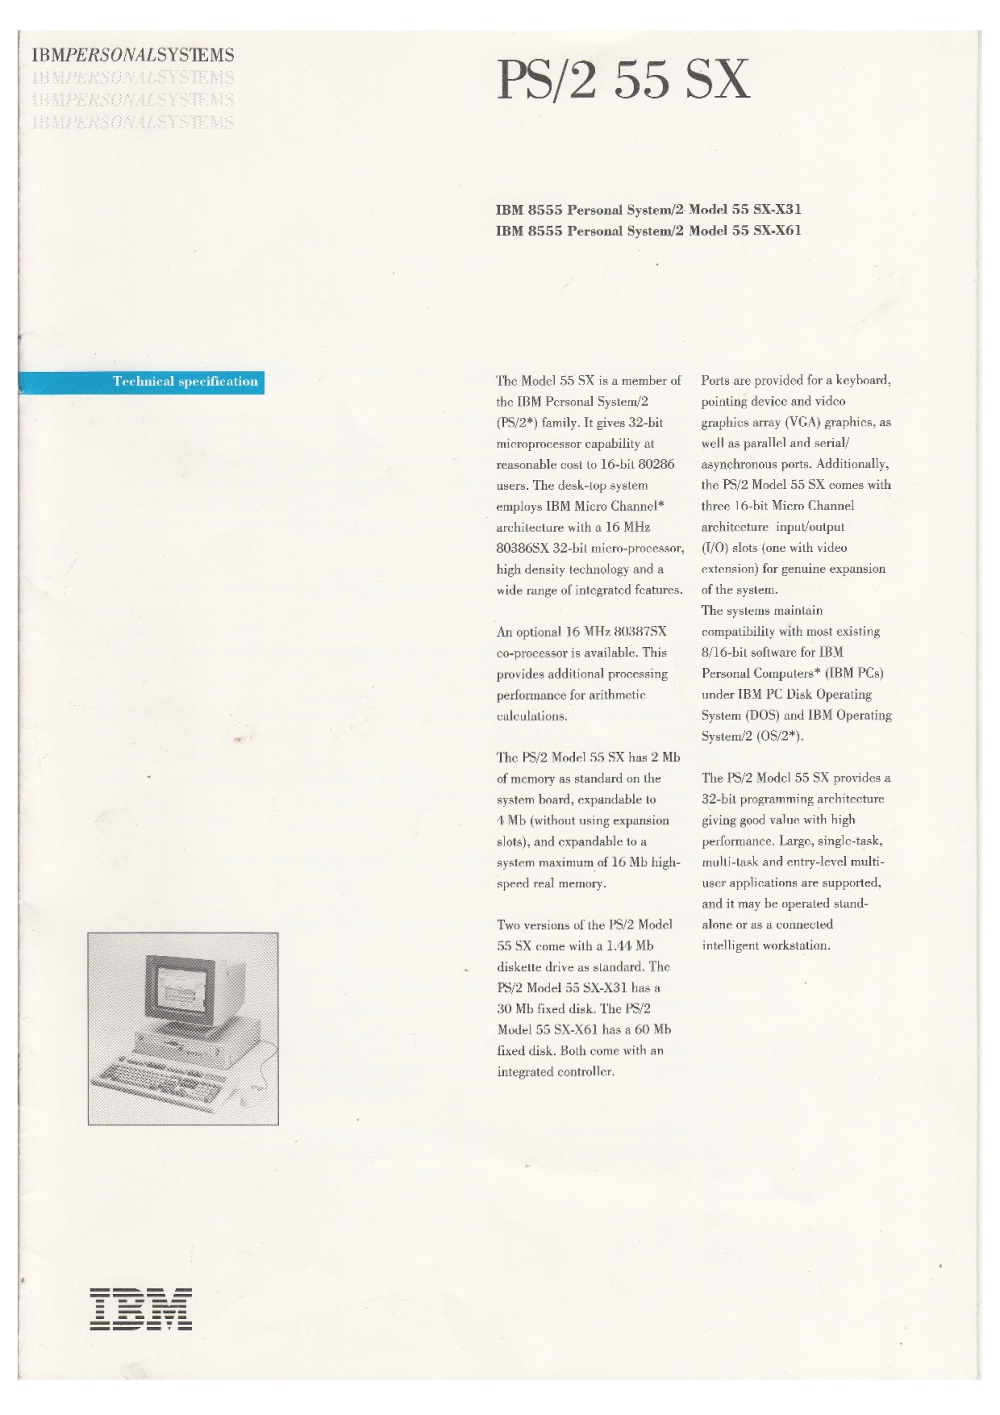 Scan of Document: IBM PS/2 55 SX - Technical Specifications Brochure